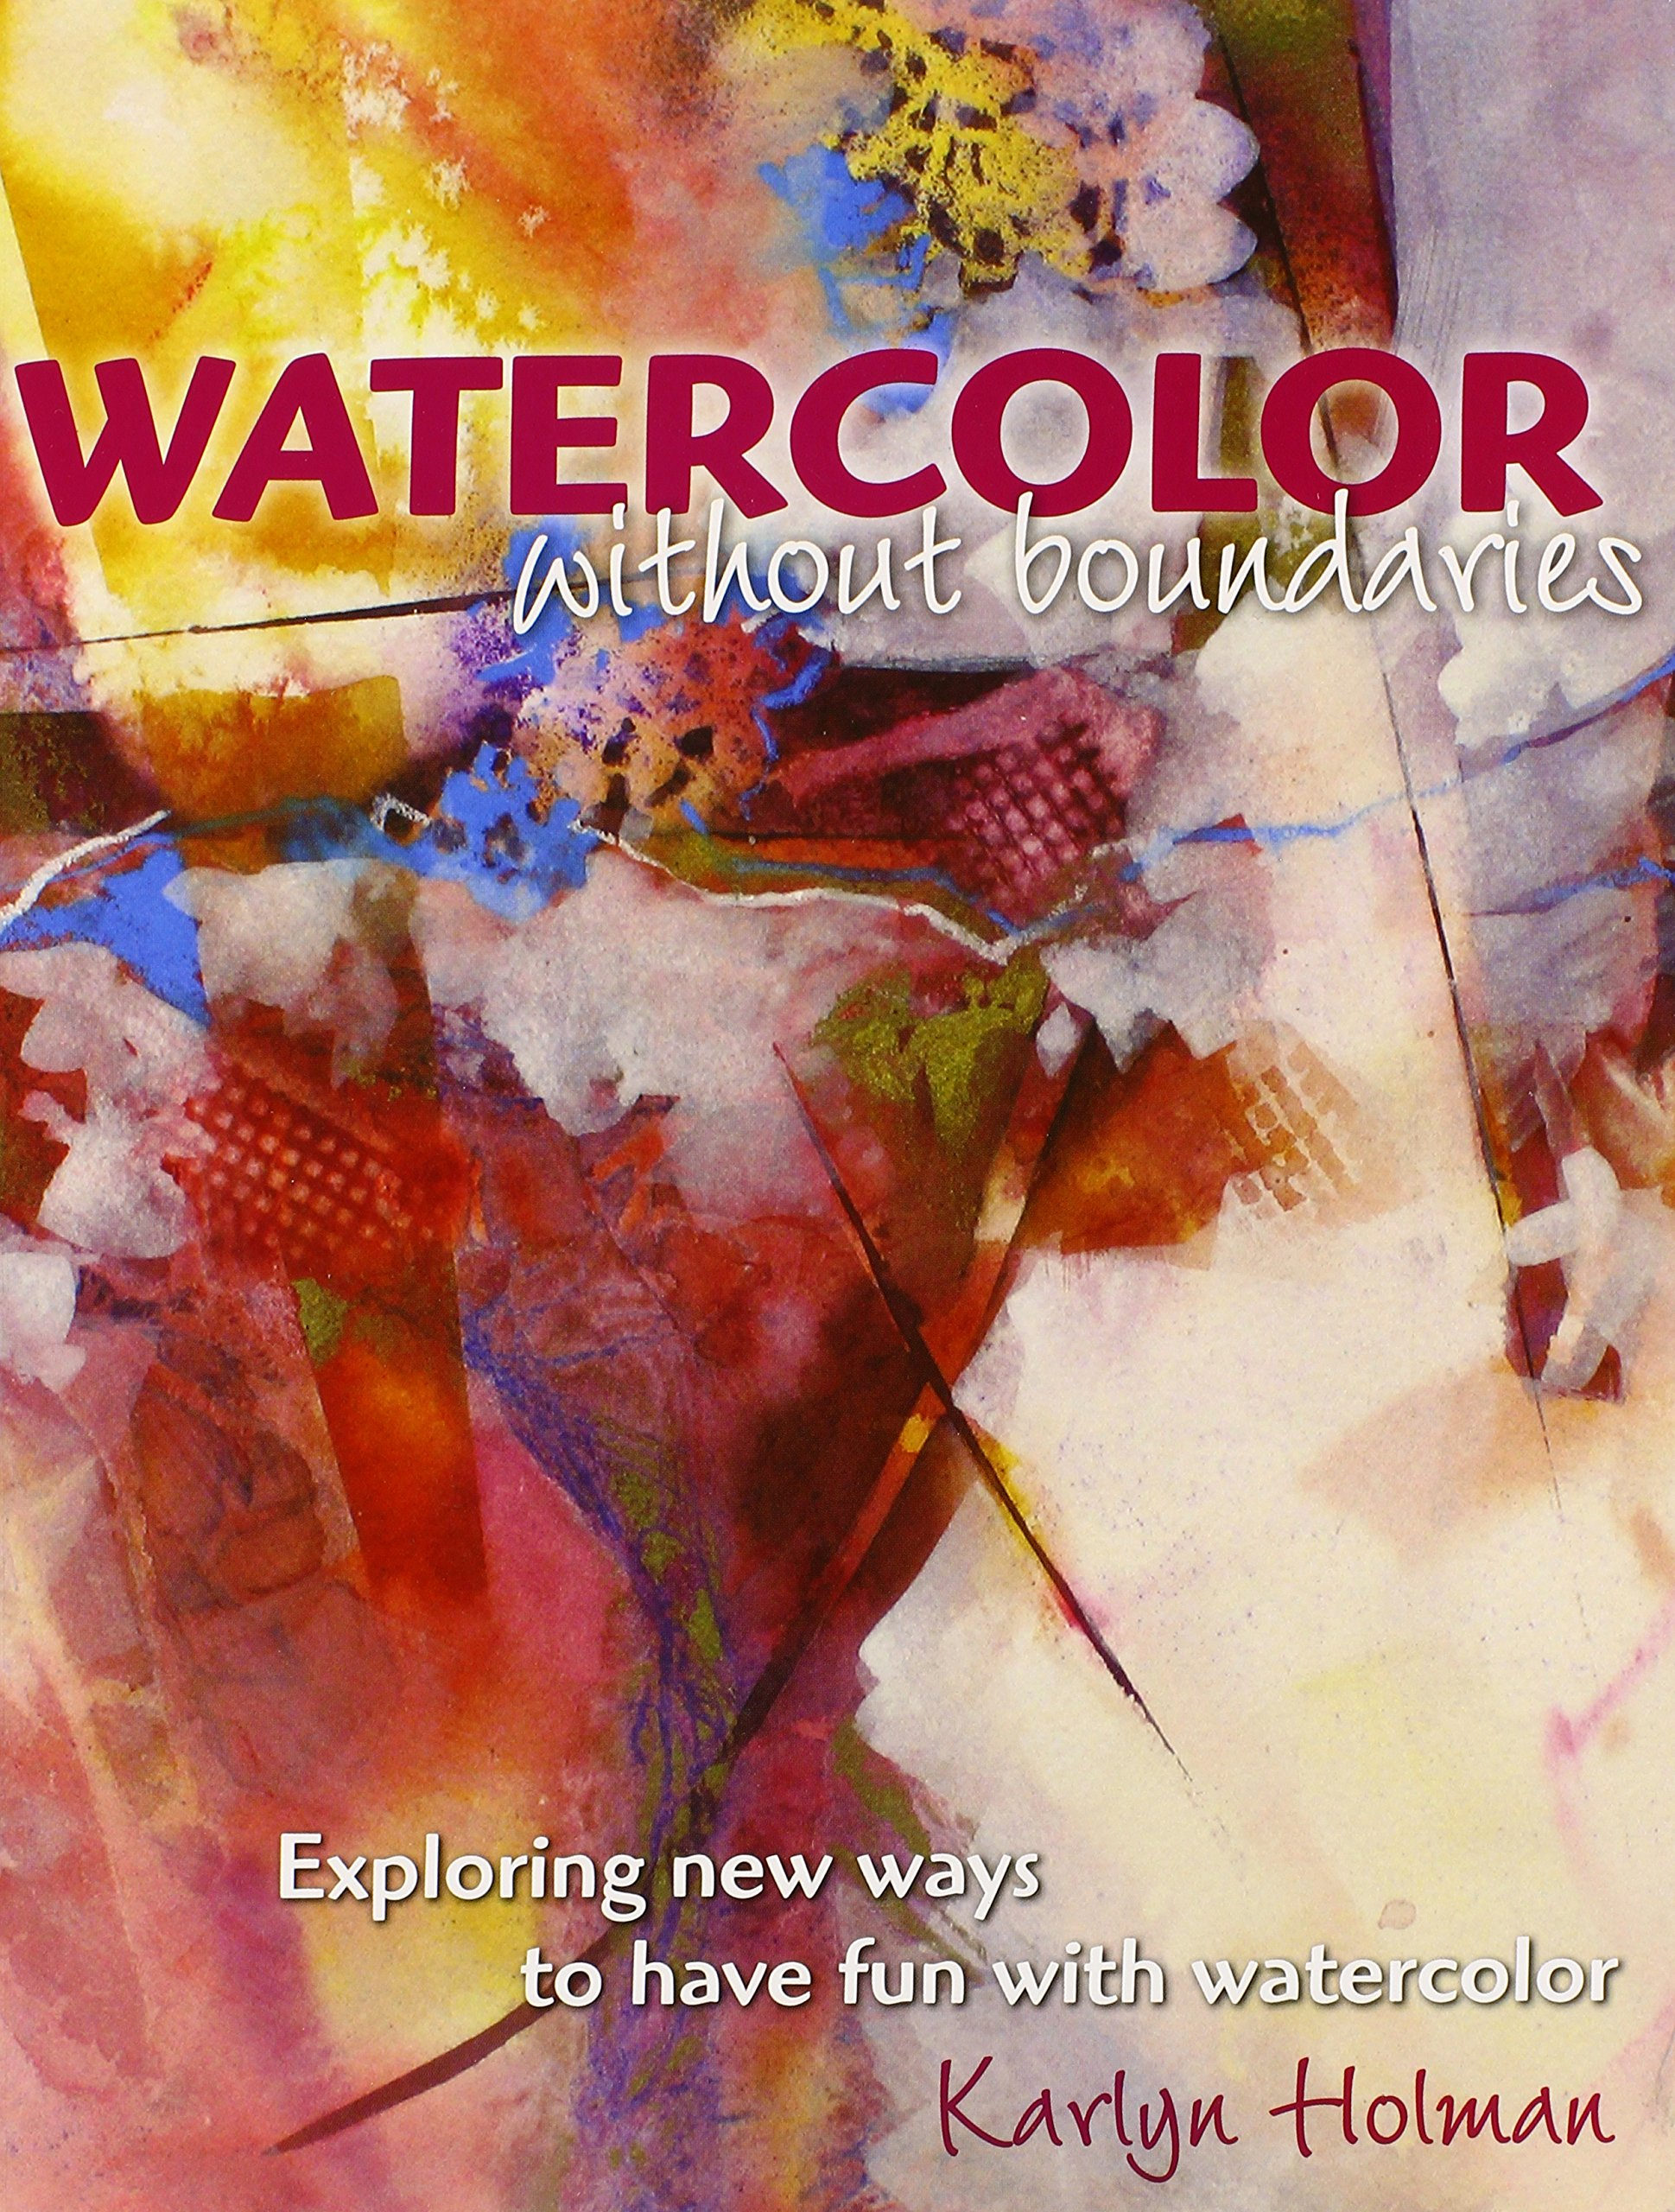 Watercolor books amazon - Watercolor Without Boundaries Exploring Ways To Have Fun With Watercolor Karlyn Holman 9780979221842 Amazon Com Books